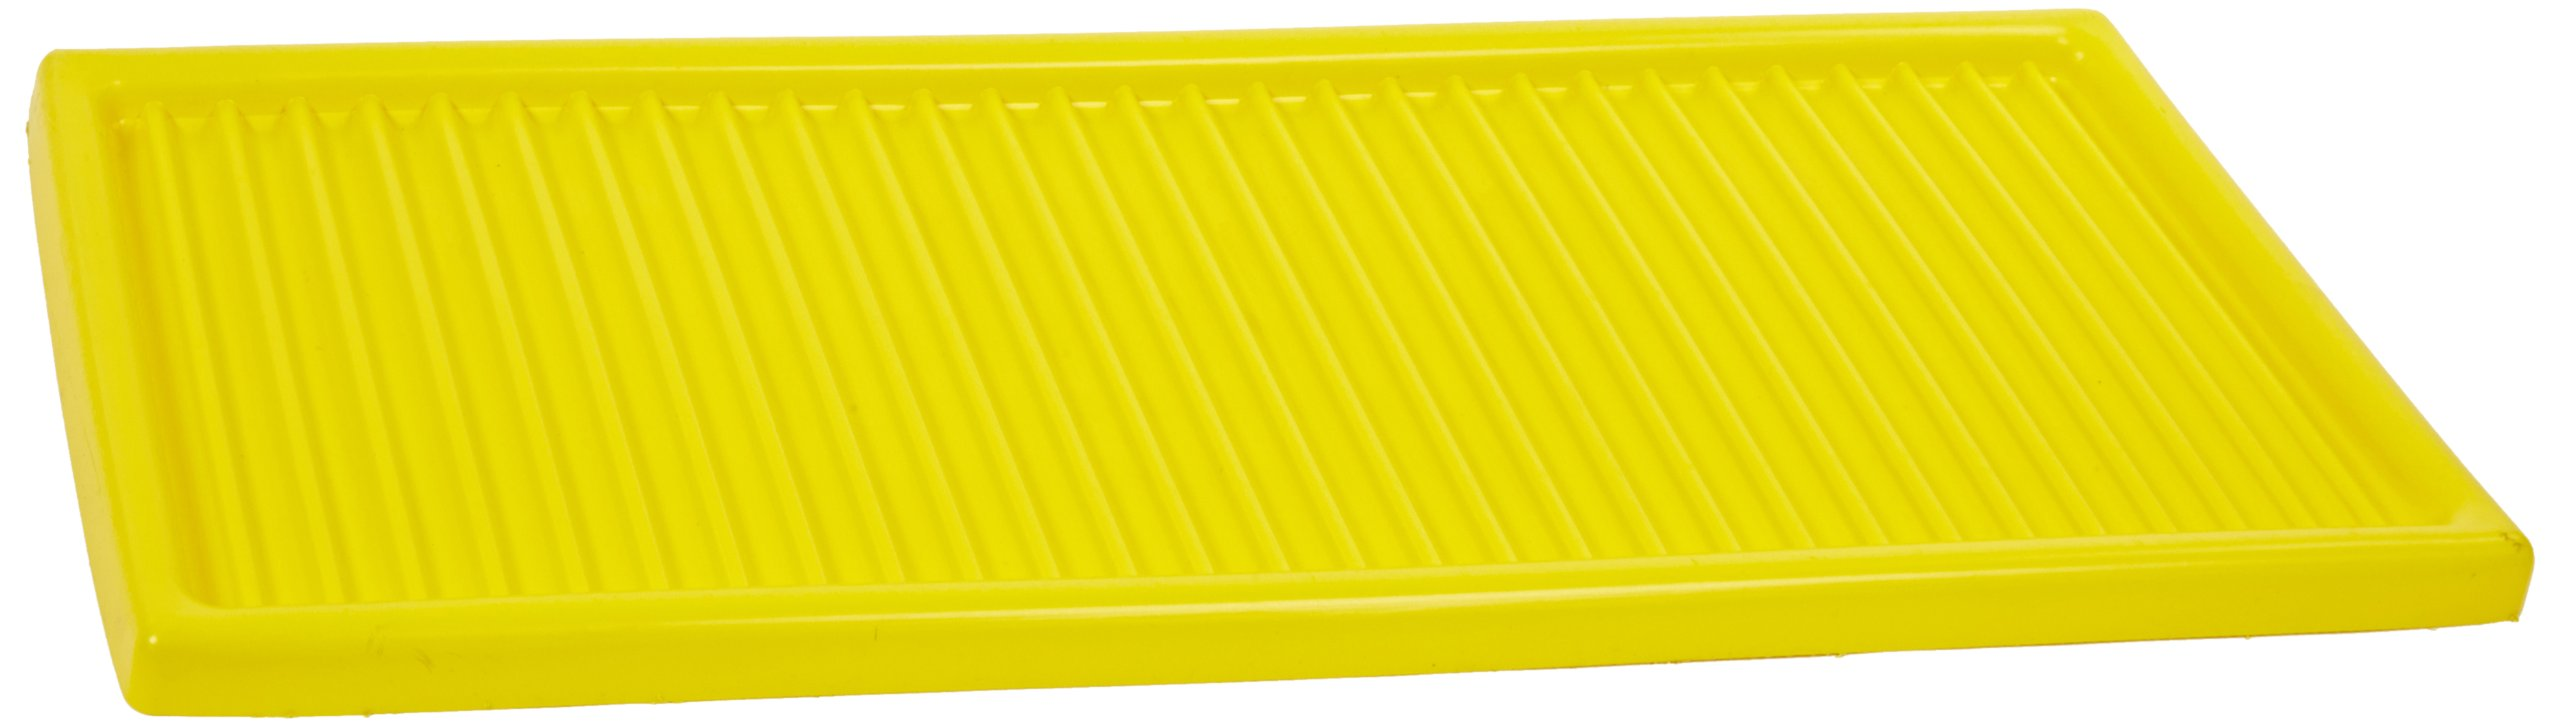 Eagle CRA-1913 Poly Shelf Tray, For CRA-30, CRA-32, CRA-45, CRA-47 and ADD-CRA Acid/Corrosive Safety Cabinets